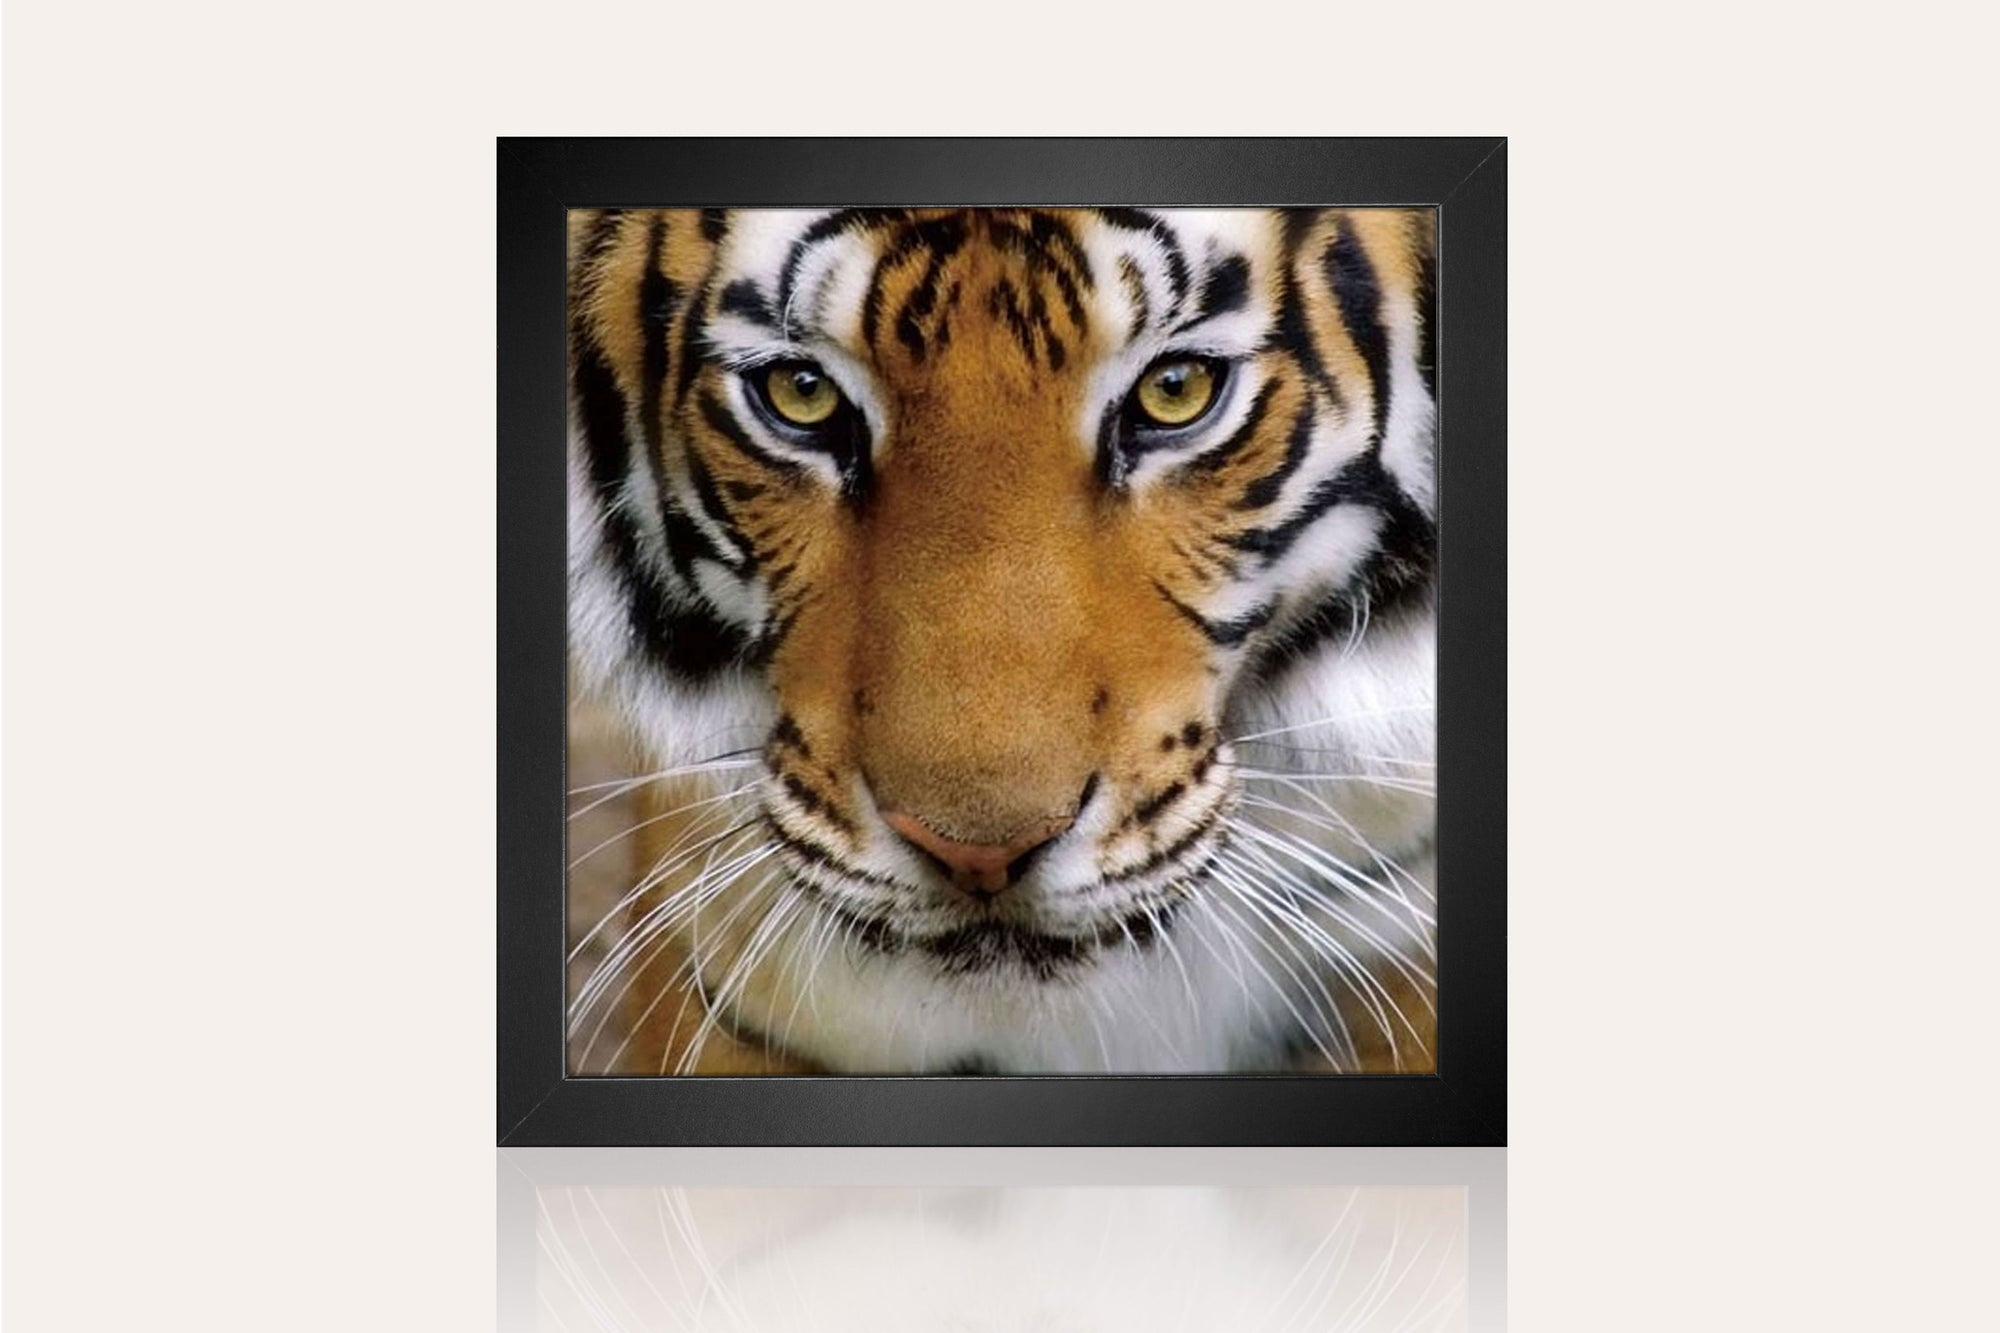 Tiger Acrylic Wall Art by Venini